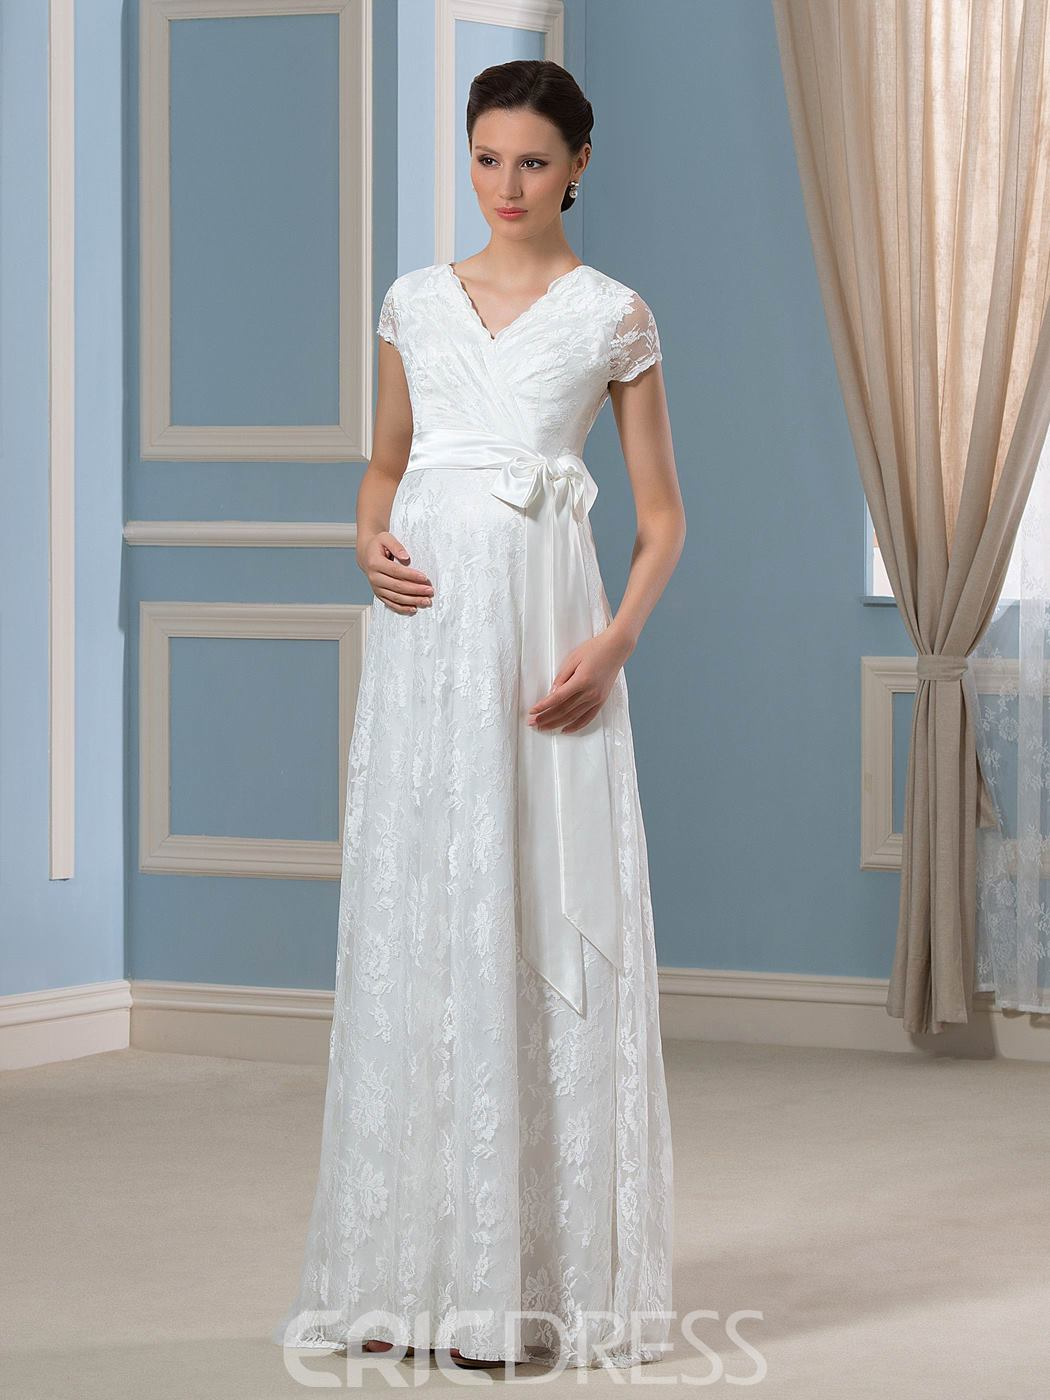 Ericdress Casual Short Sleeves Lace Maternity Wedding Dress 11505775 ...